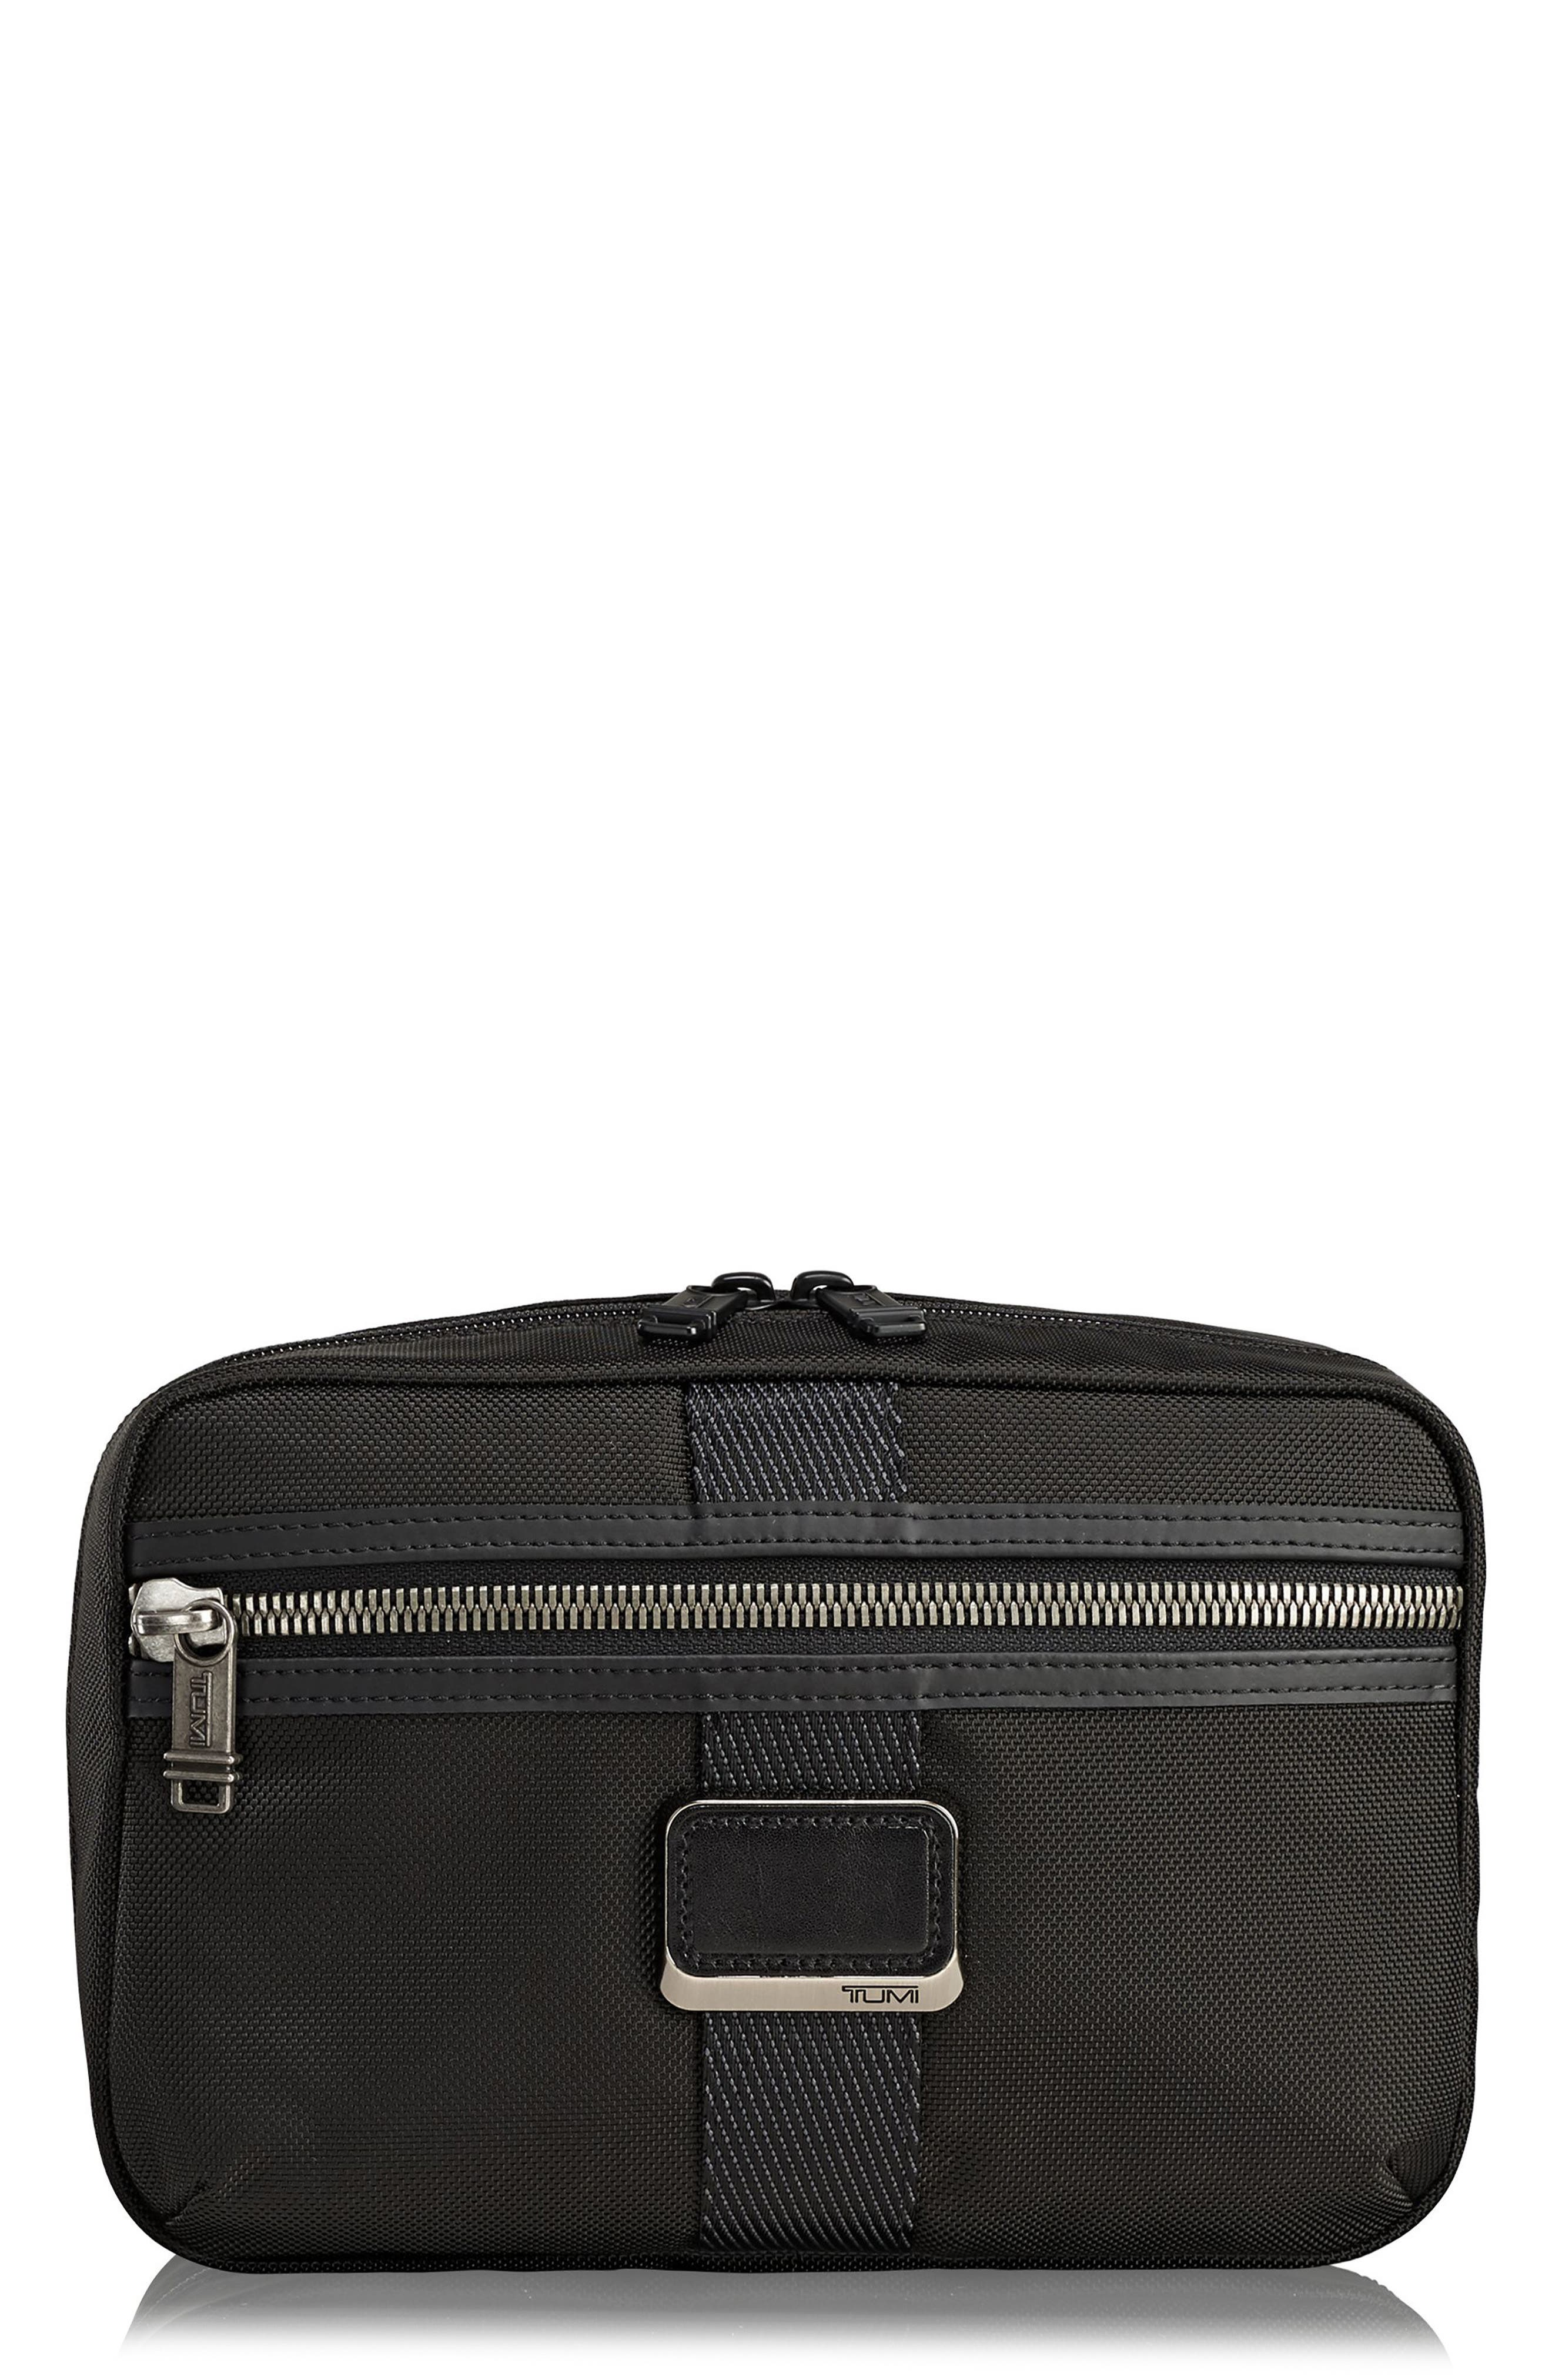 Reno Dopp Kit,                         Main,                         color, Black